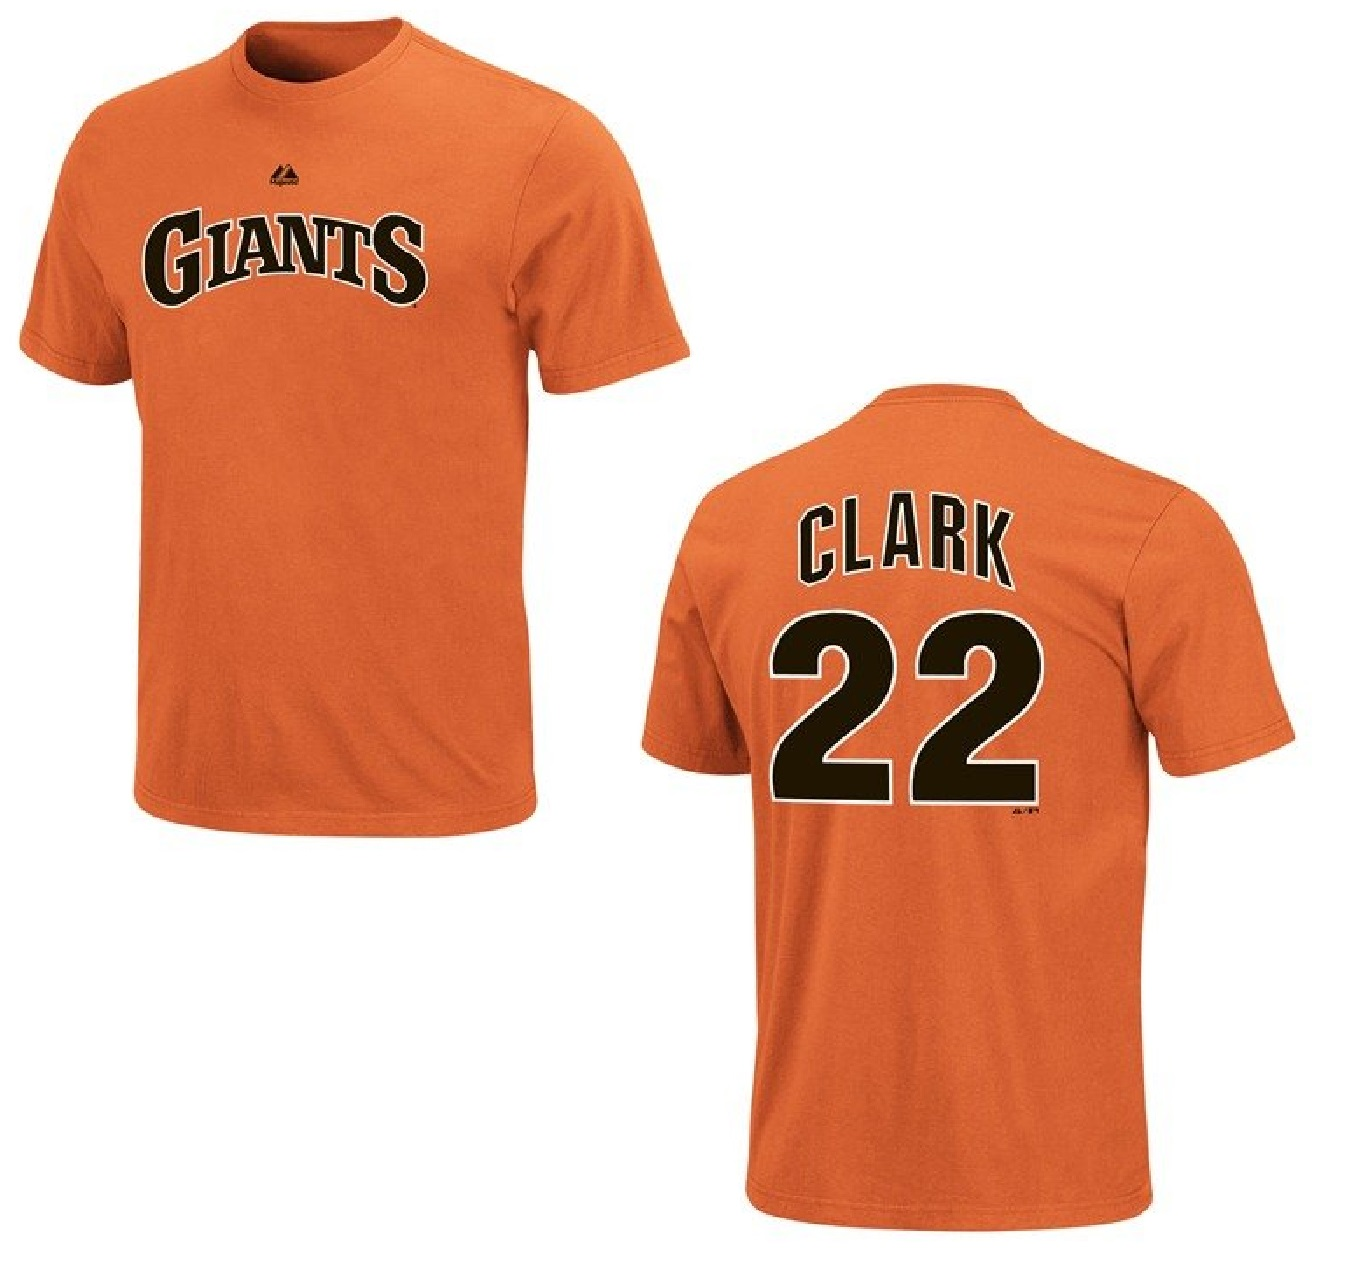 San Francisco Giants Will Clark Name and Number Orange T-Shirt (M)